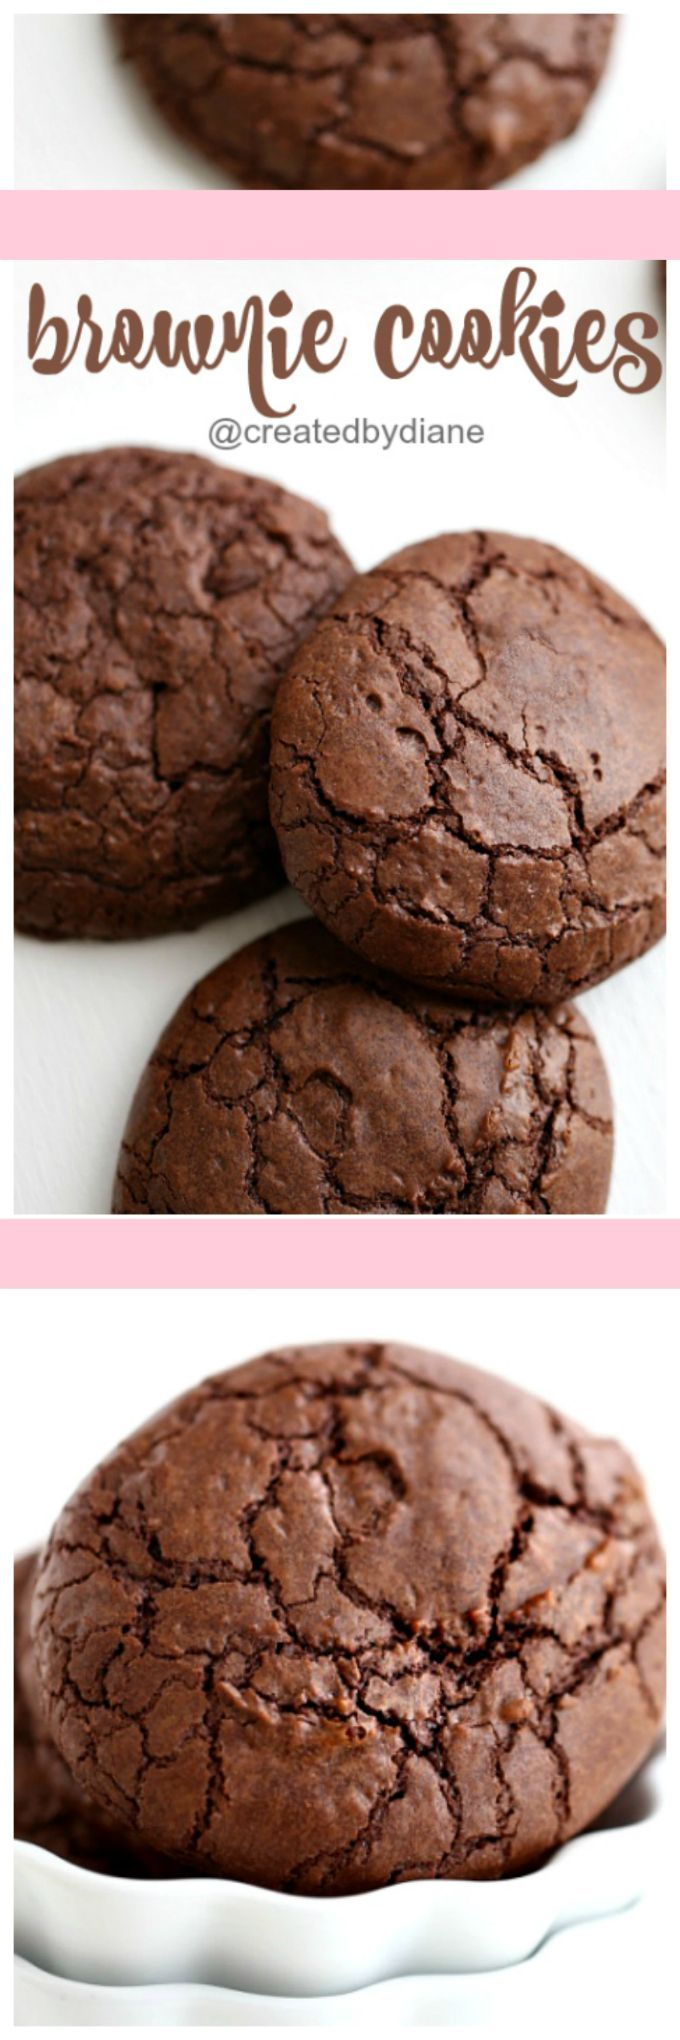 these brownie cookies will have everyone over the moon for them, they taste like brownies are firm and crisp on the edges and chewy and brownie inside video... yes there is a video to see just how easy it is to make these rich delicious dark chocolate brownie cookies @createdbydiane